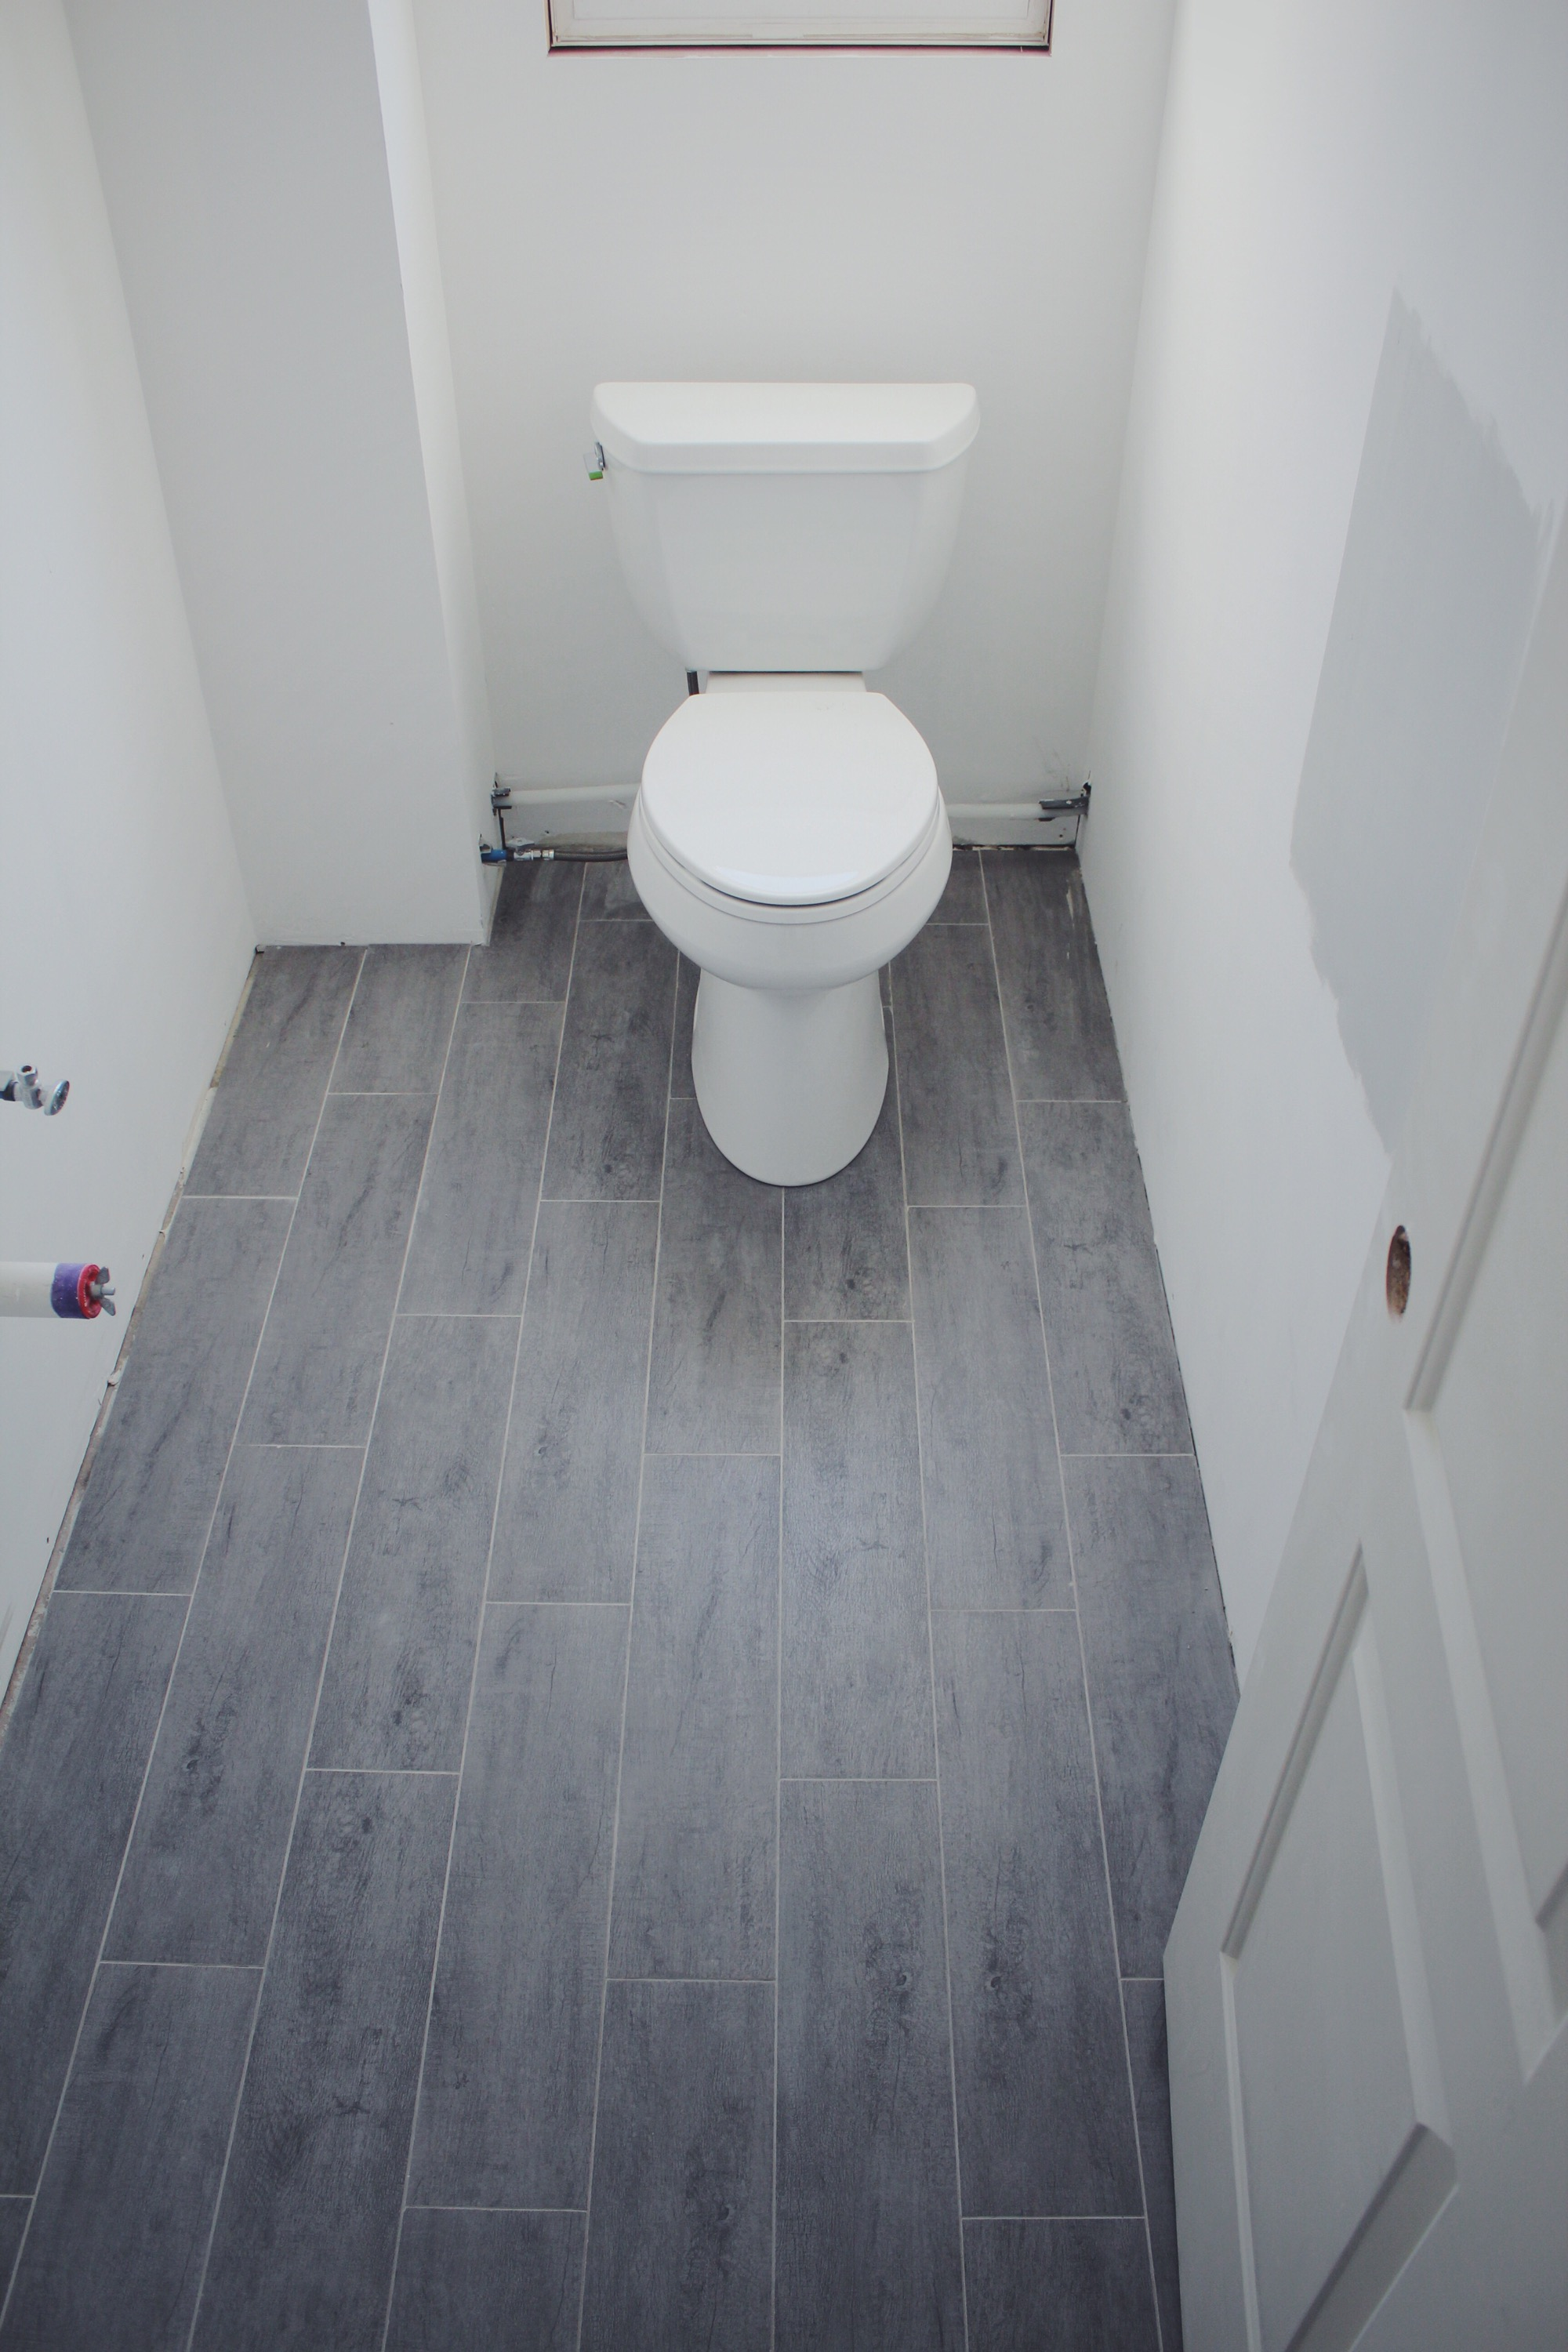 Kohler Highline Classic Toilet Installation Project Our